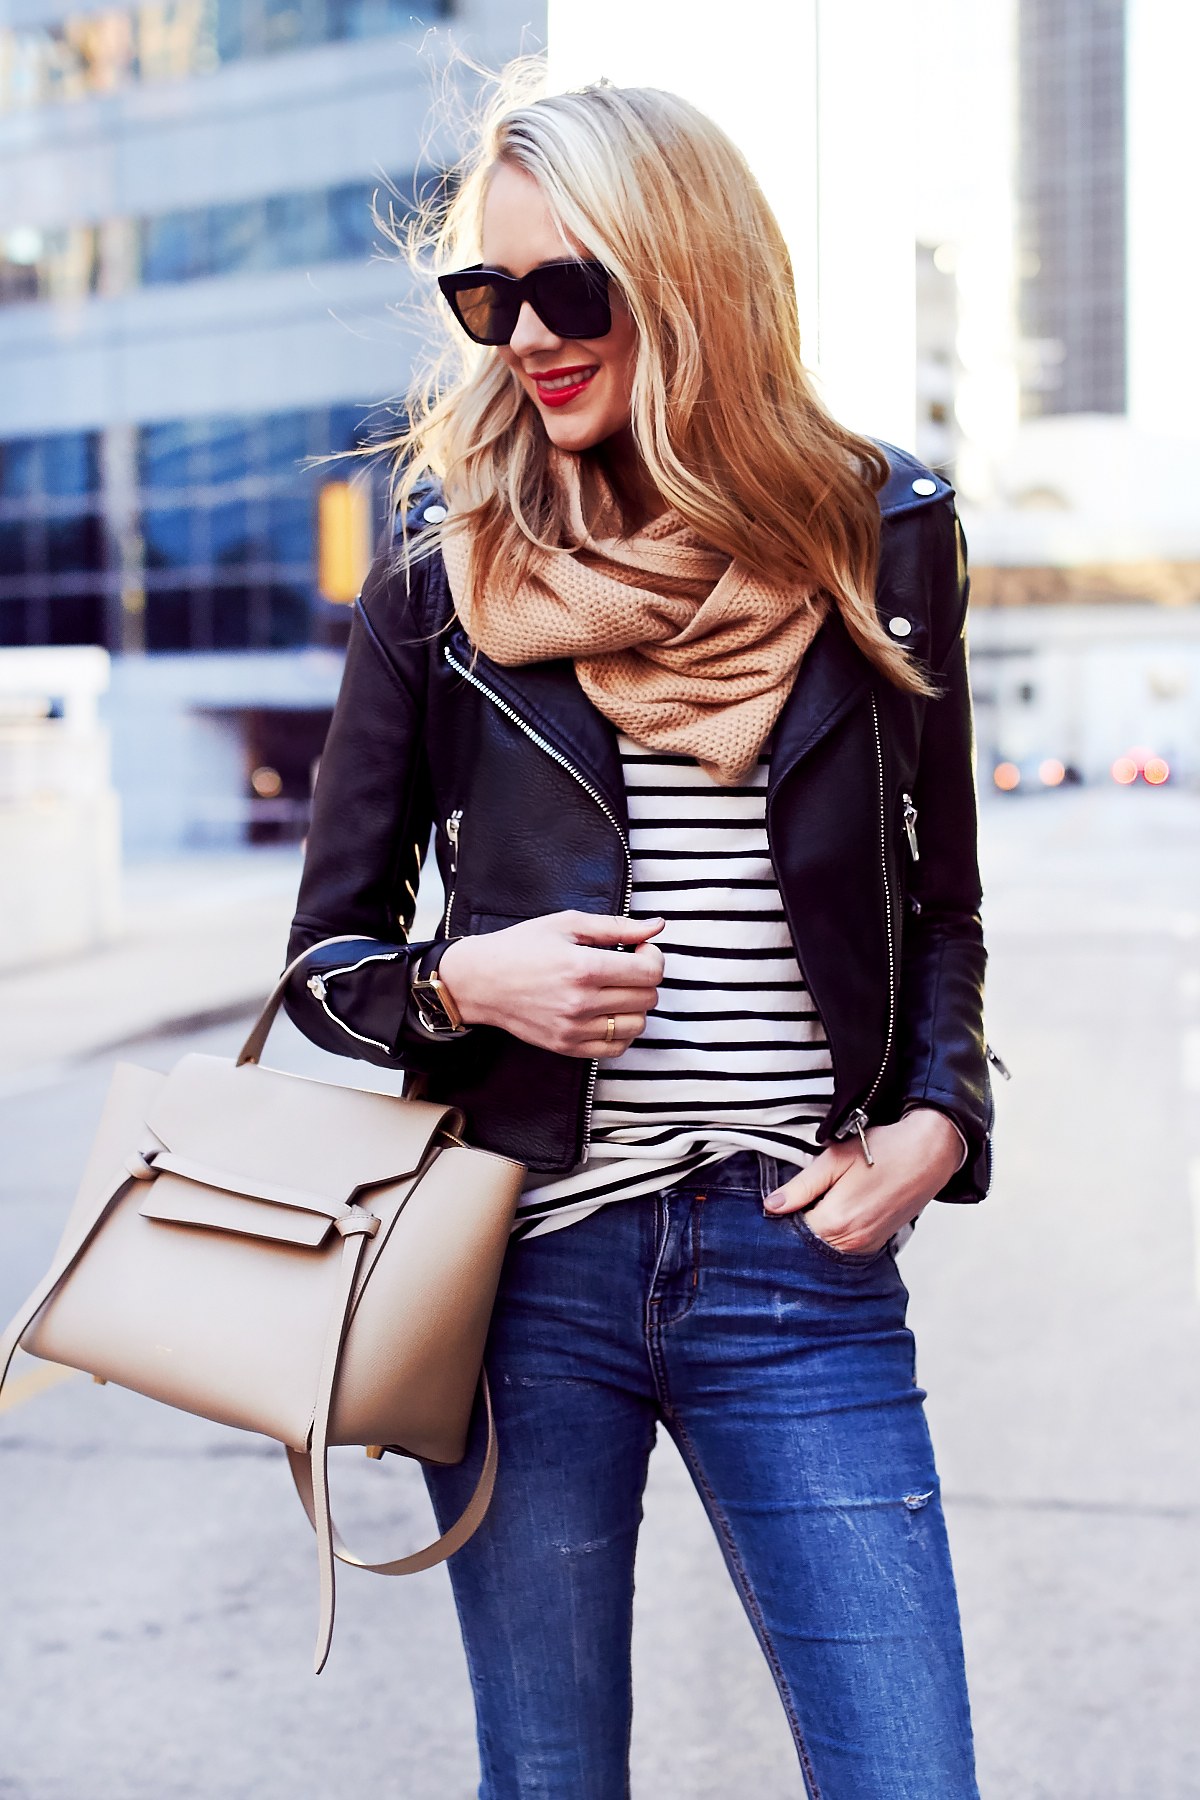 Fall Outfit, Casual Layers, Faux Leather Black Jacket, Black & White Stripe Tee, Ripped Denim Skinny Jeans, Celine Tie Belt Bag